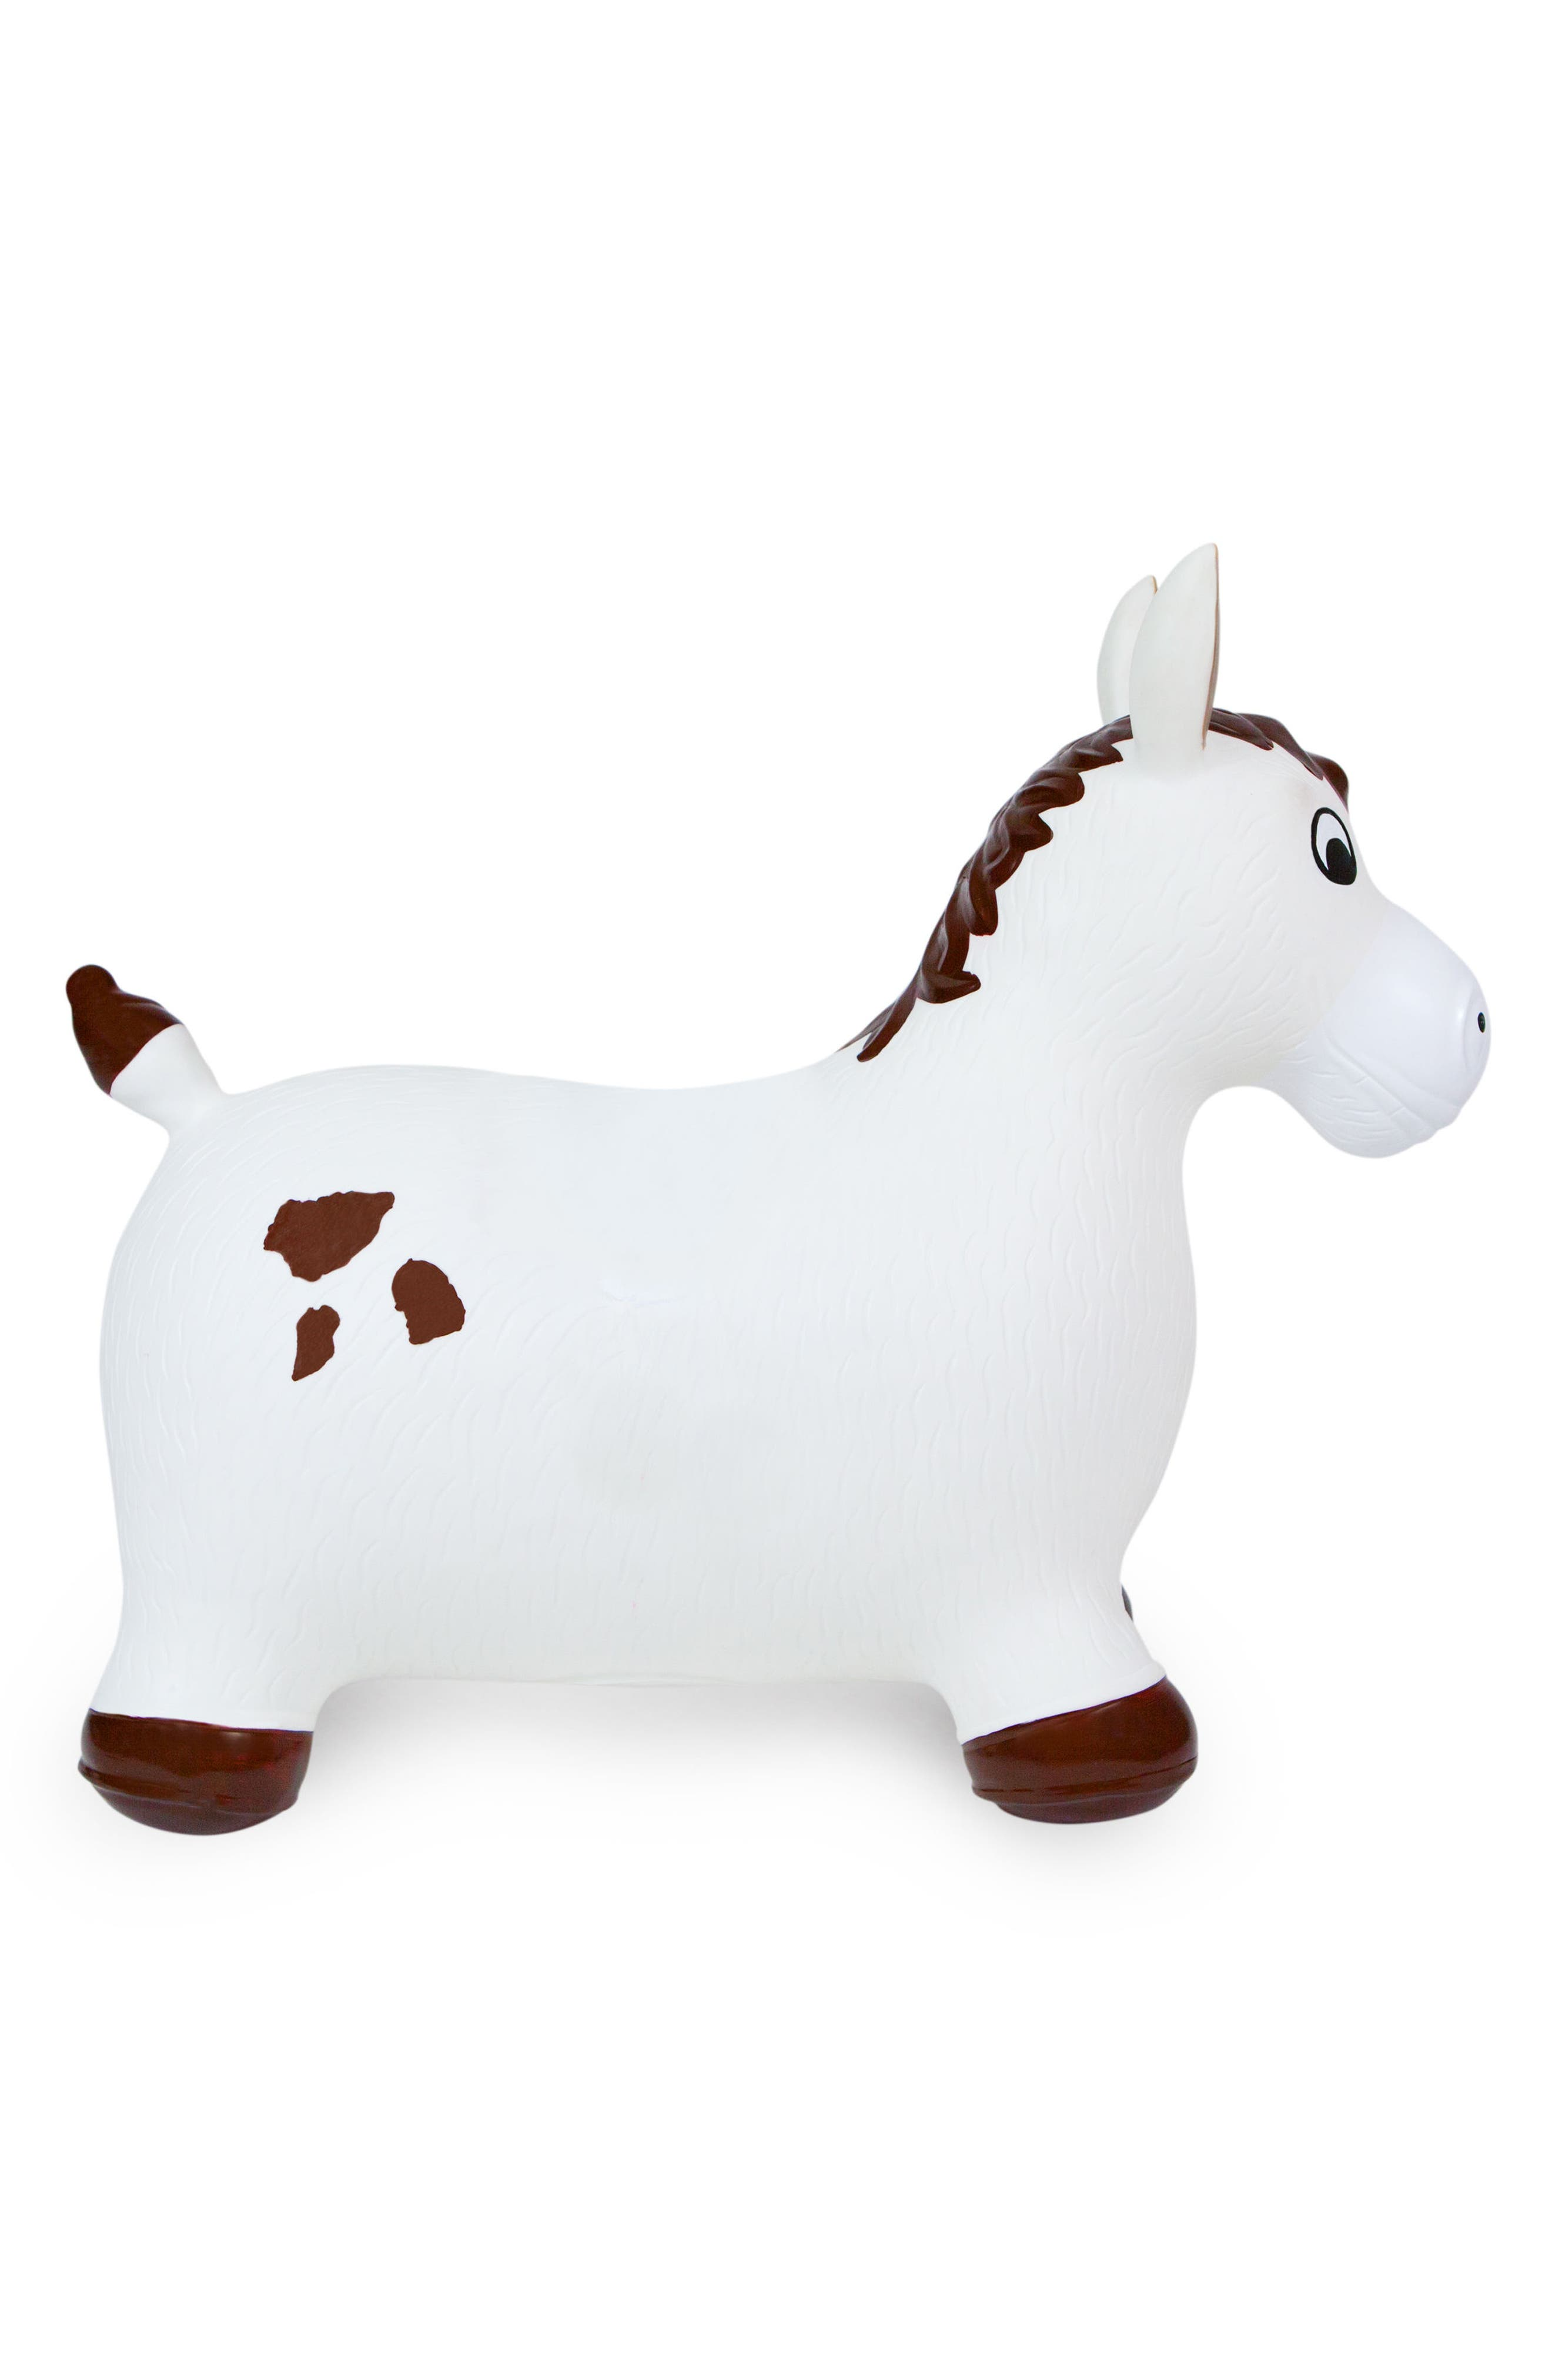 Lucky Bouncy Ride-On Horse Toy,                             Alternate thumbnail 2, color,                             WHITE/ BROWN